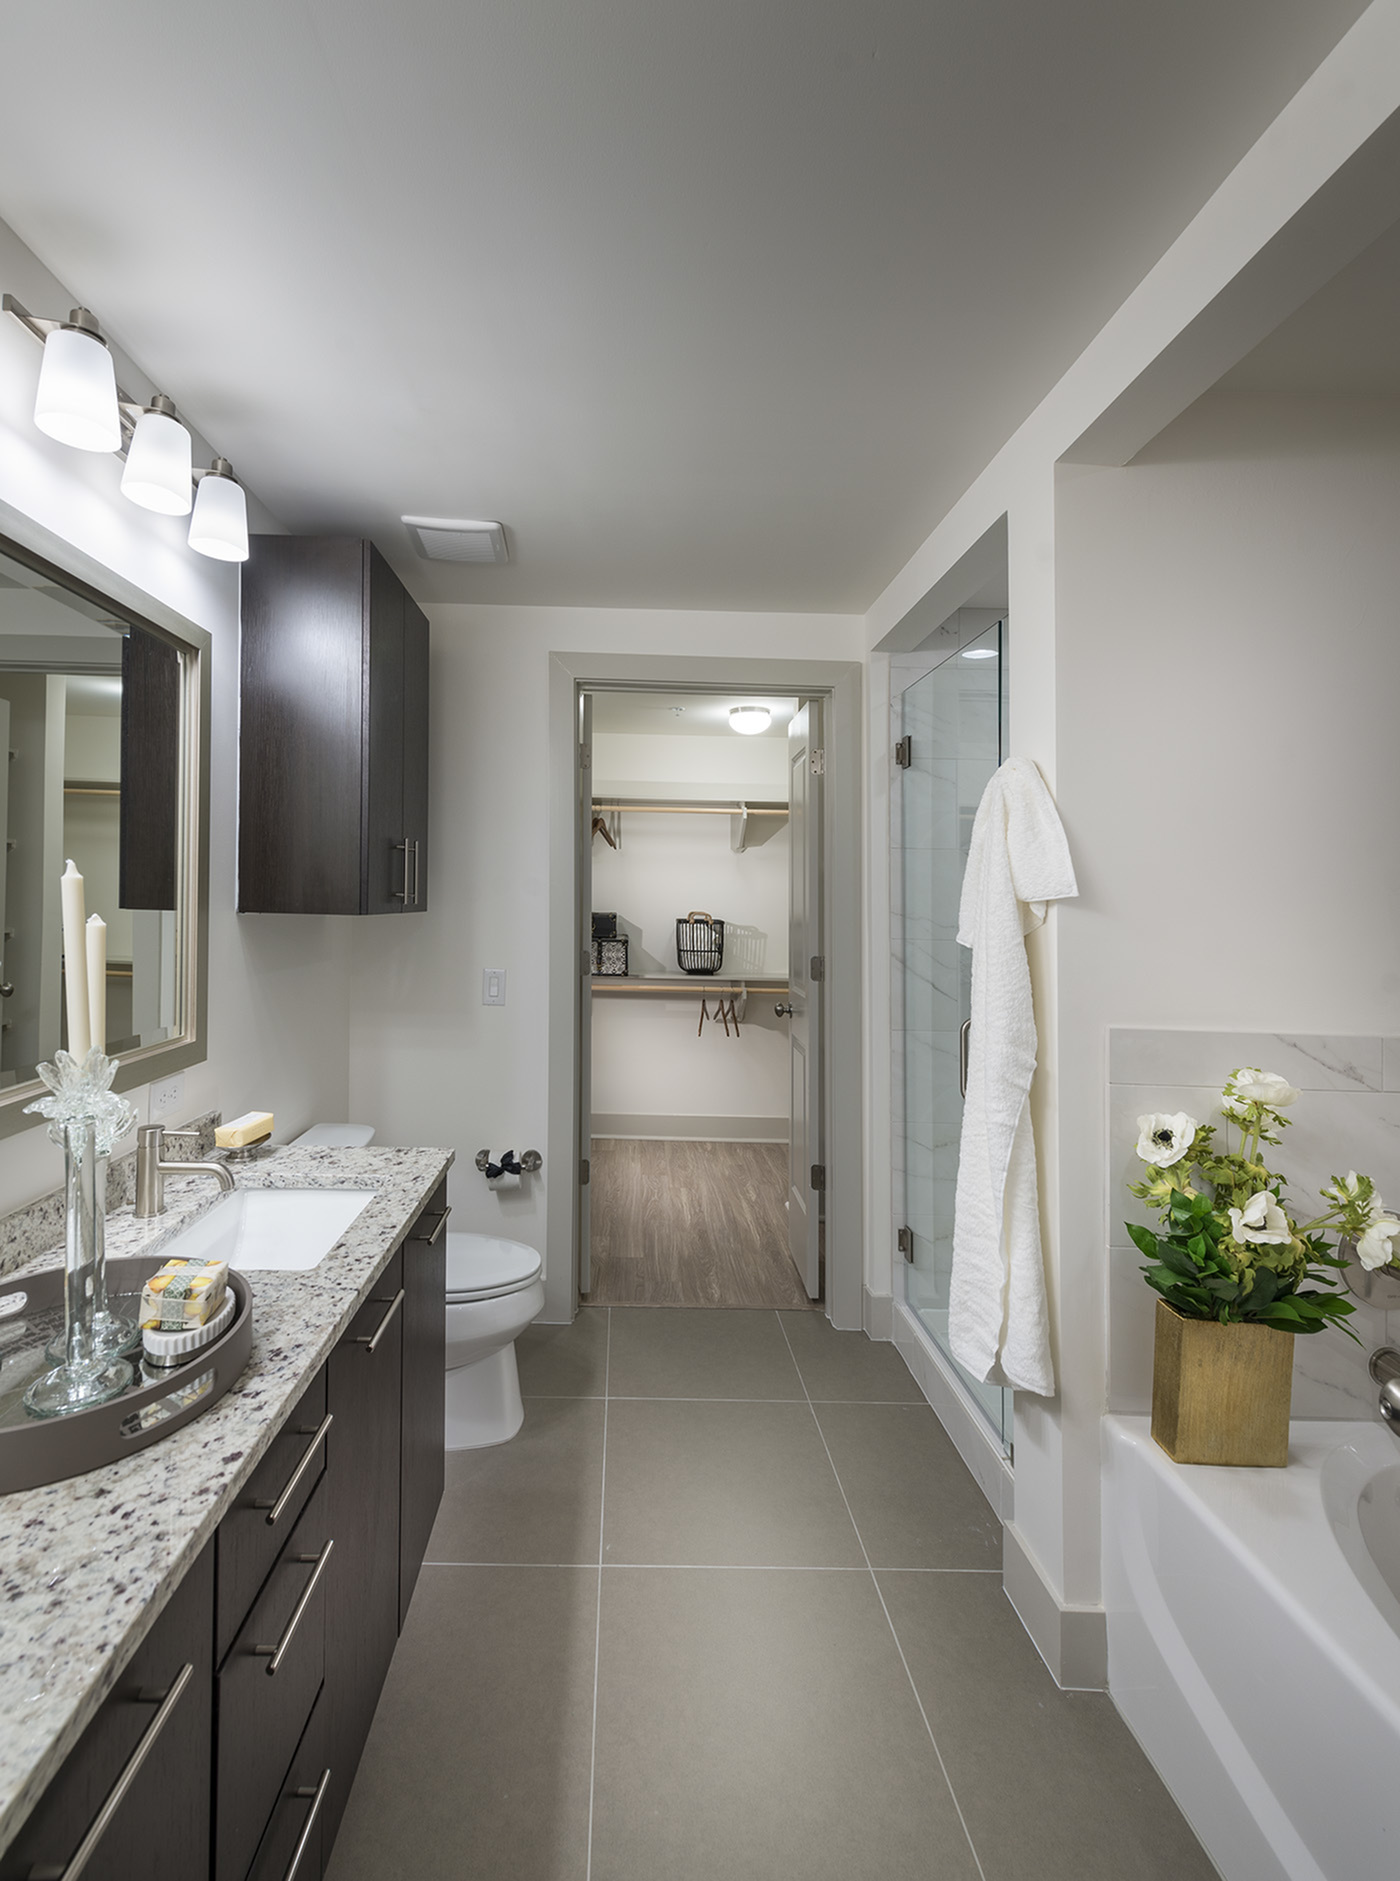 Image of Spa-inspired bathrooms with frameless glass showers* for Hanover Buckhead Village